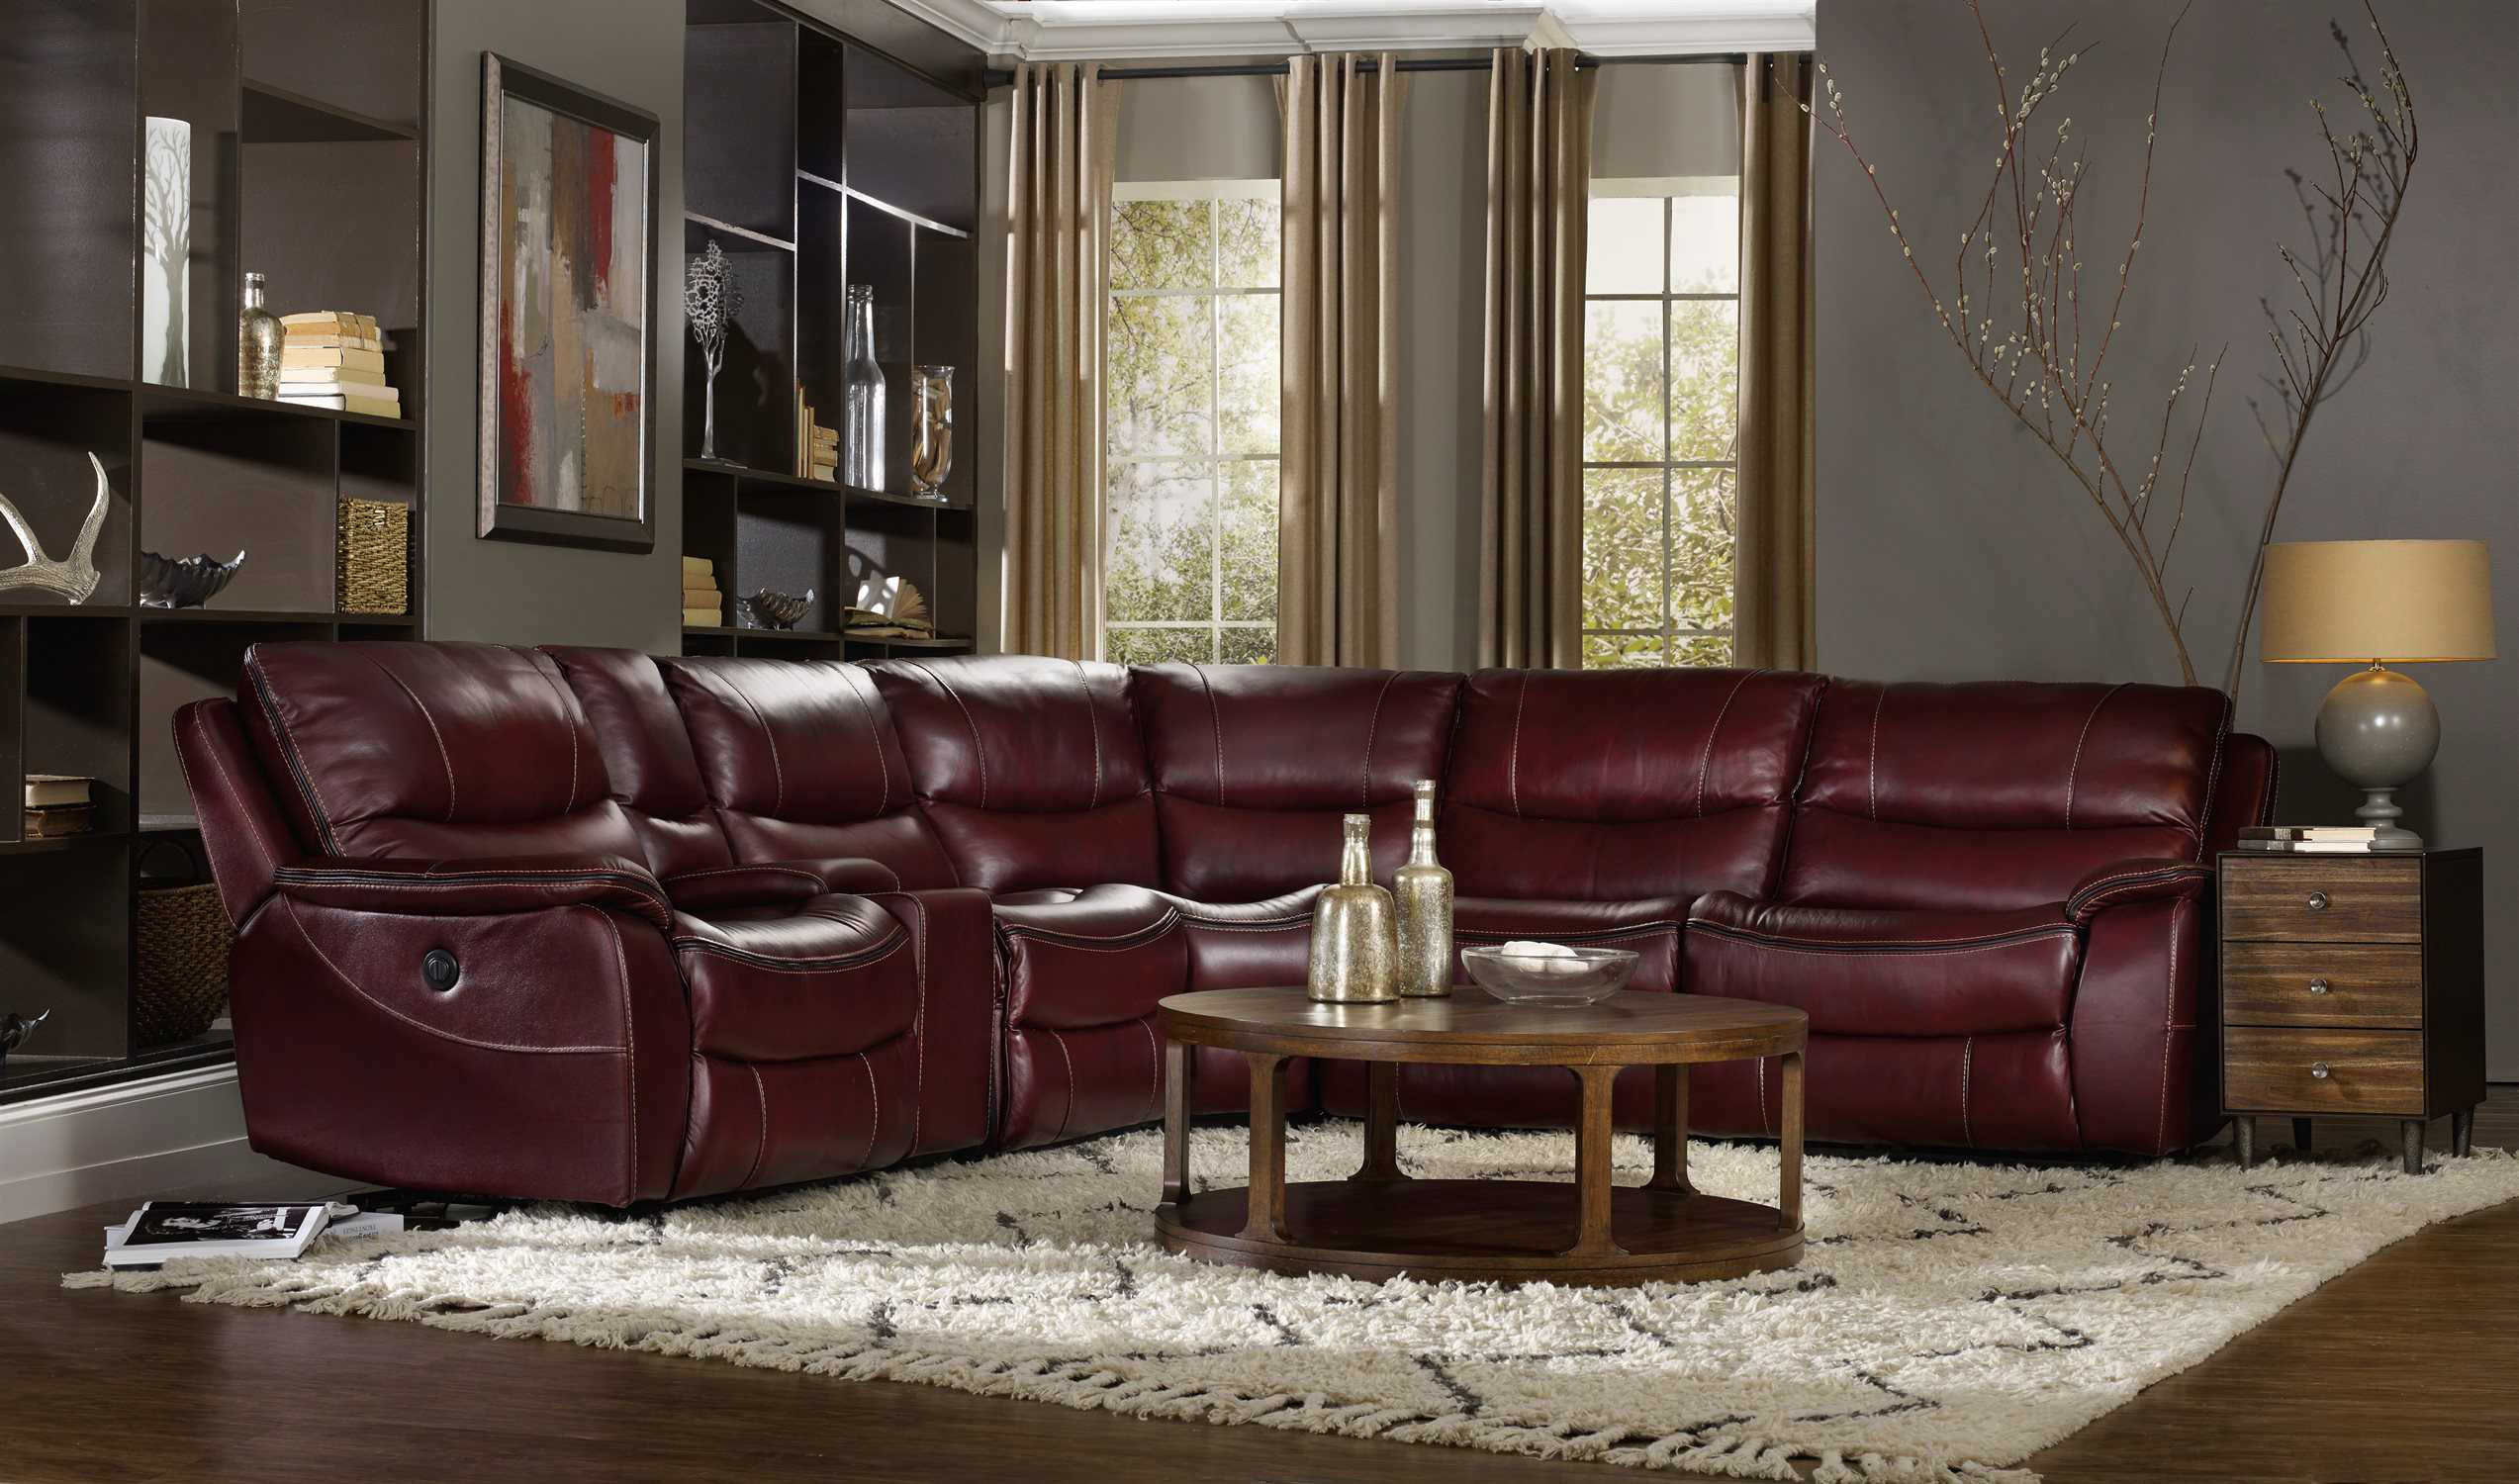 Hooker Furniture Red Wine With Black Trim Living Room Set